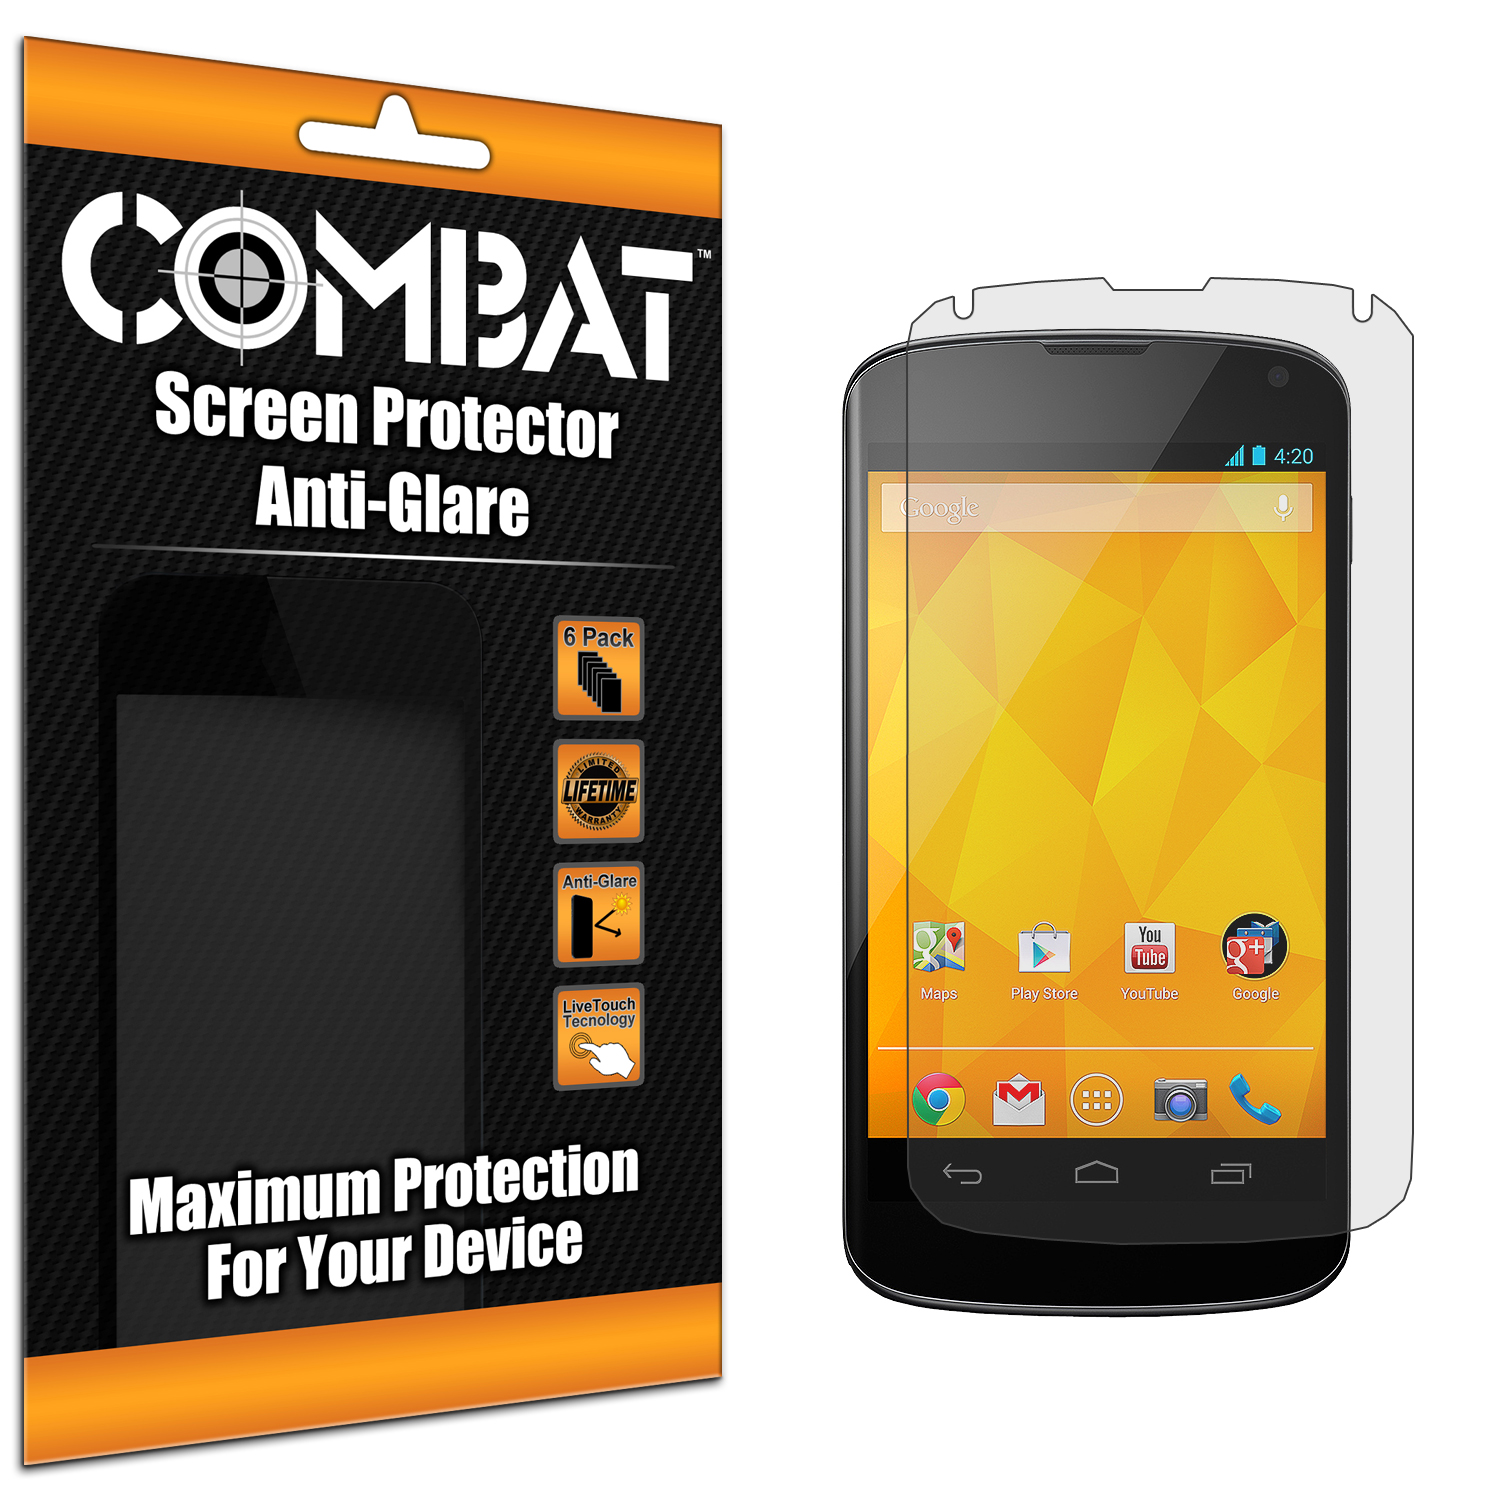 LG Google Nexus 4 Combat 6 Pack Anti-Glare Matte Screen Protector